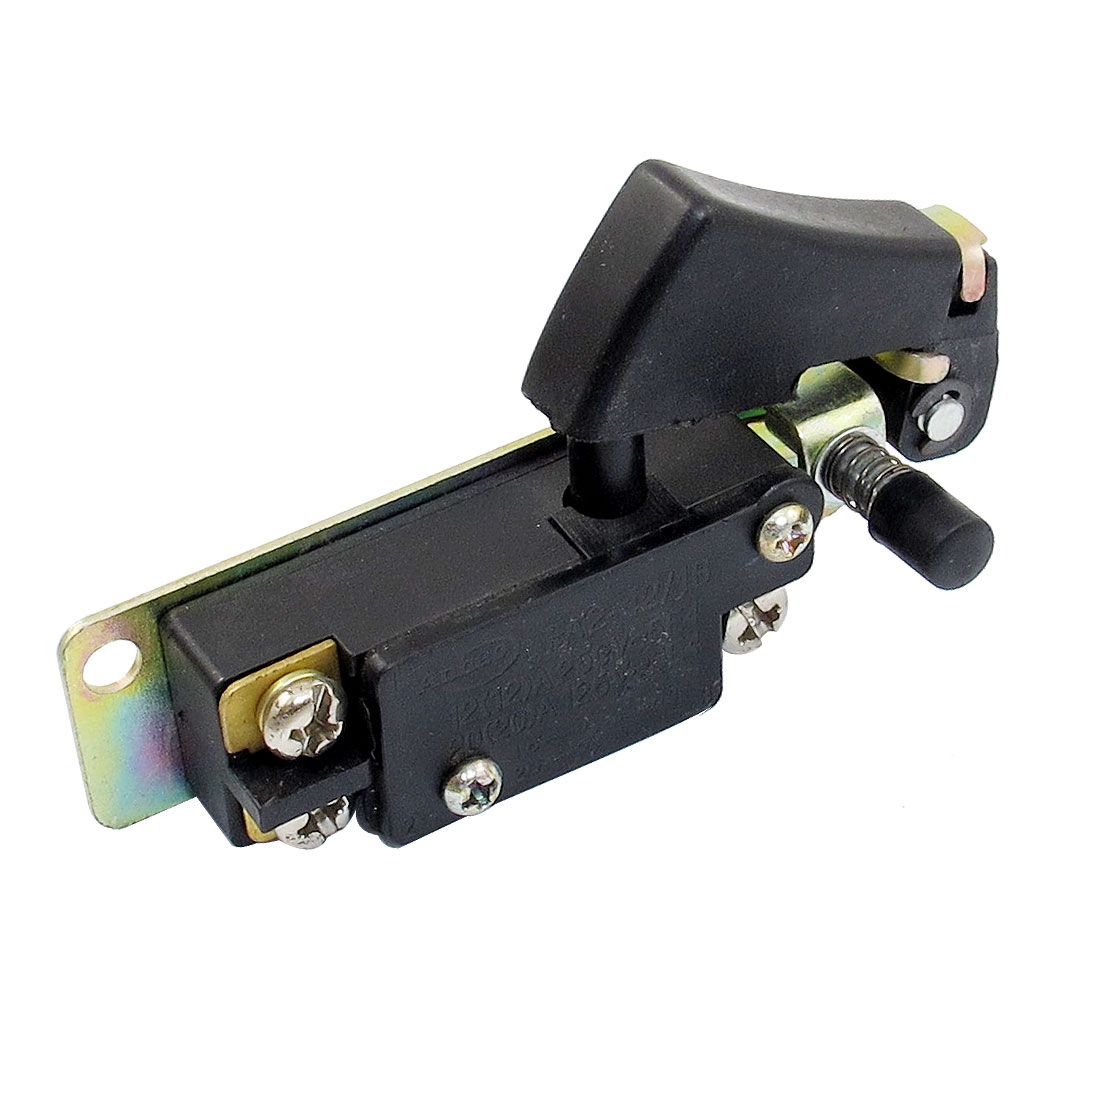 AC 250V 12A AC 125V 20A Lock On Drill Angle Grinder Trigger Switch